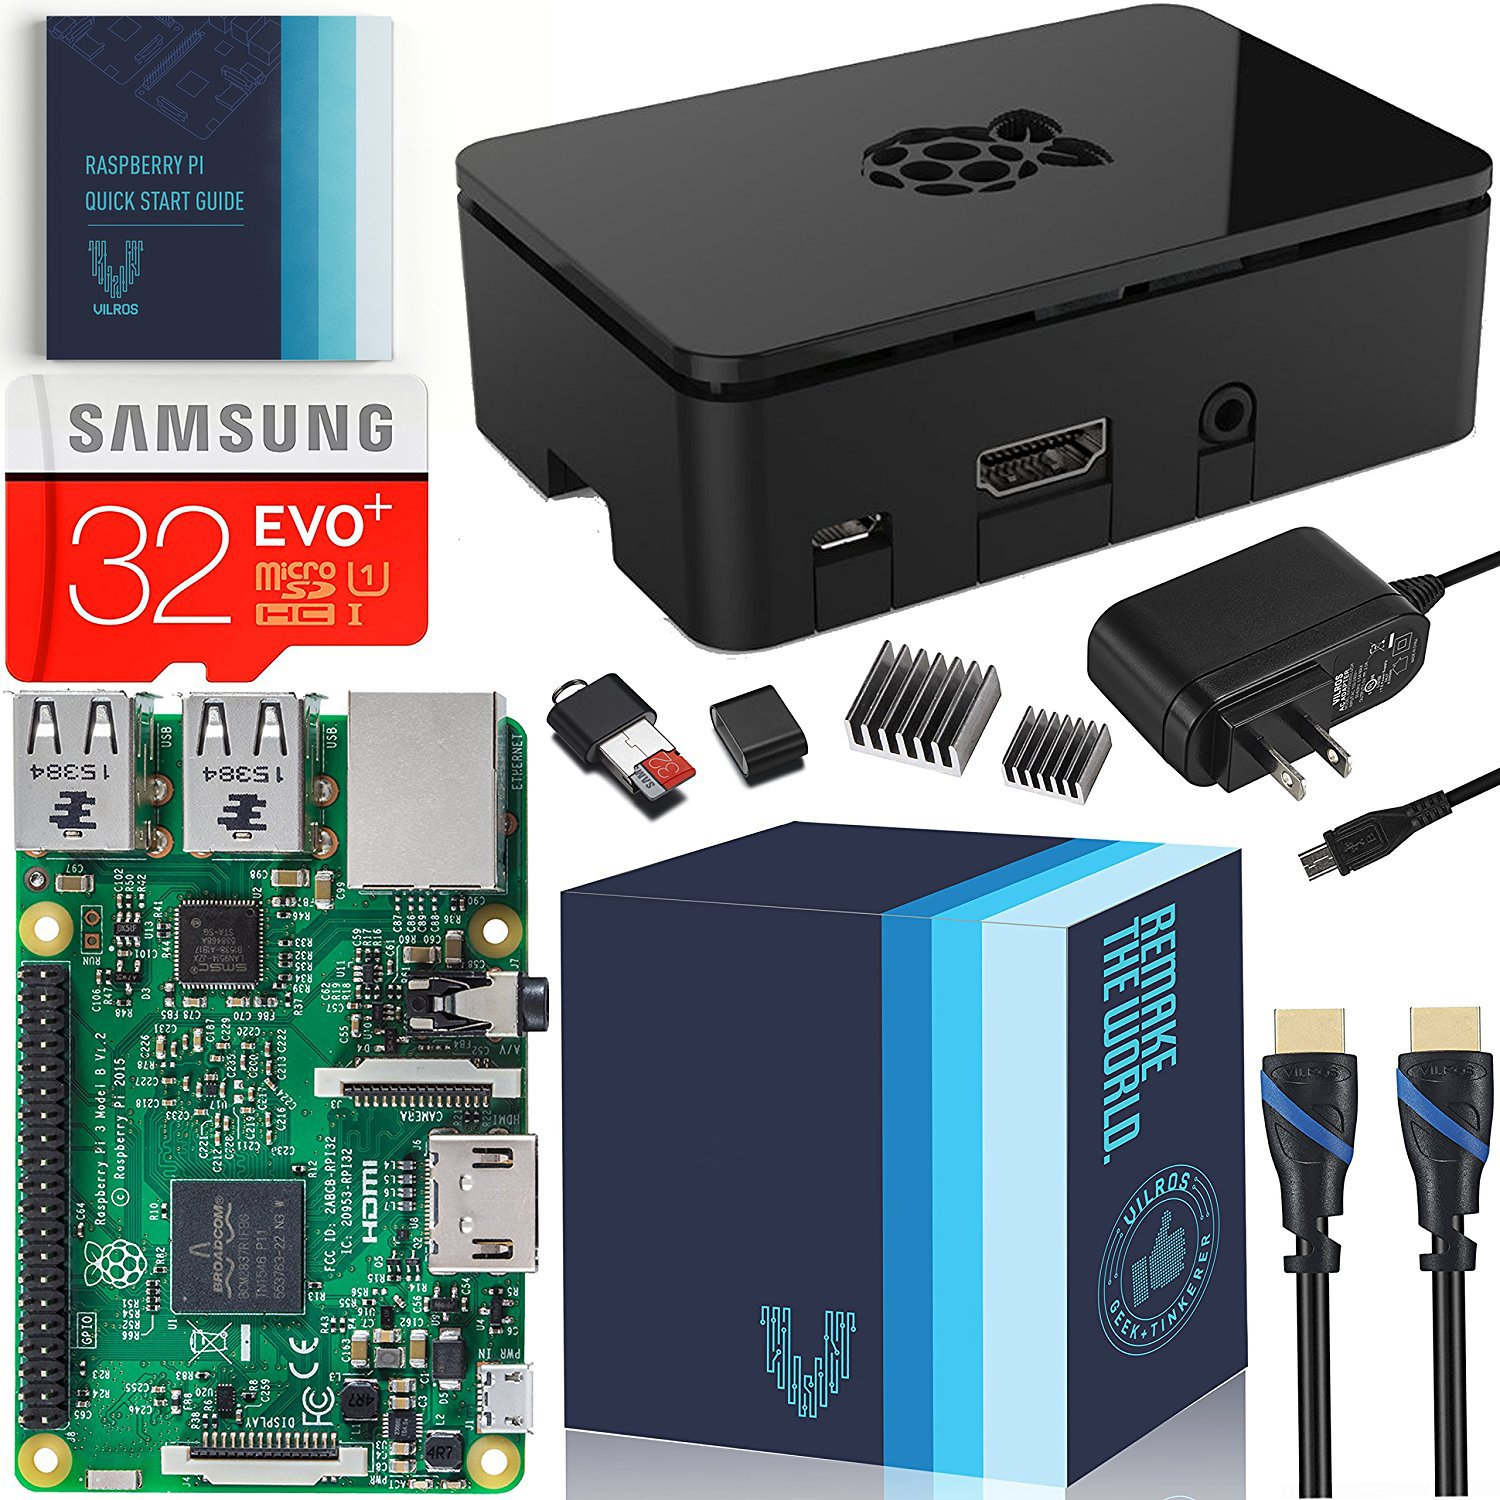 Raspberry Pi 3 Essentials Kit - On-board WiFi and Bluetooth Connectivity – 2.5A Power Supply - 32 GB Samsung Evo+ by Vilros